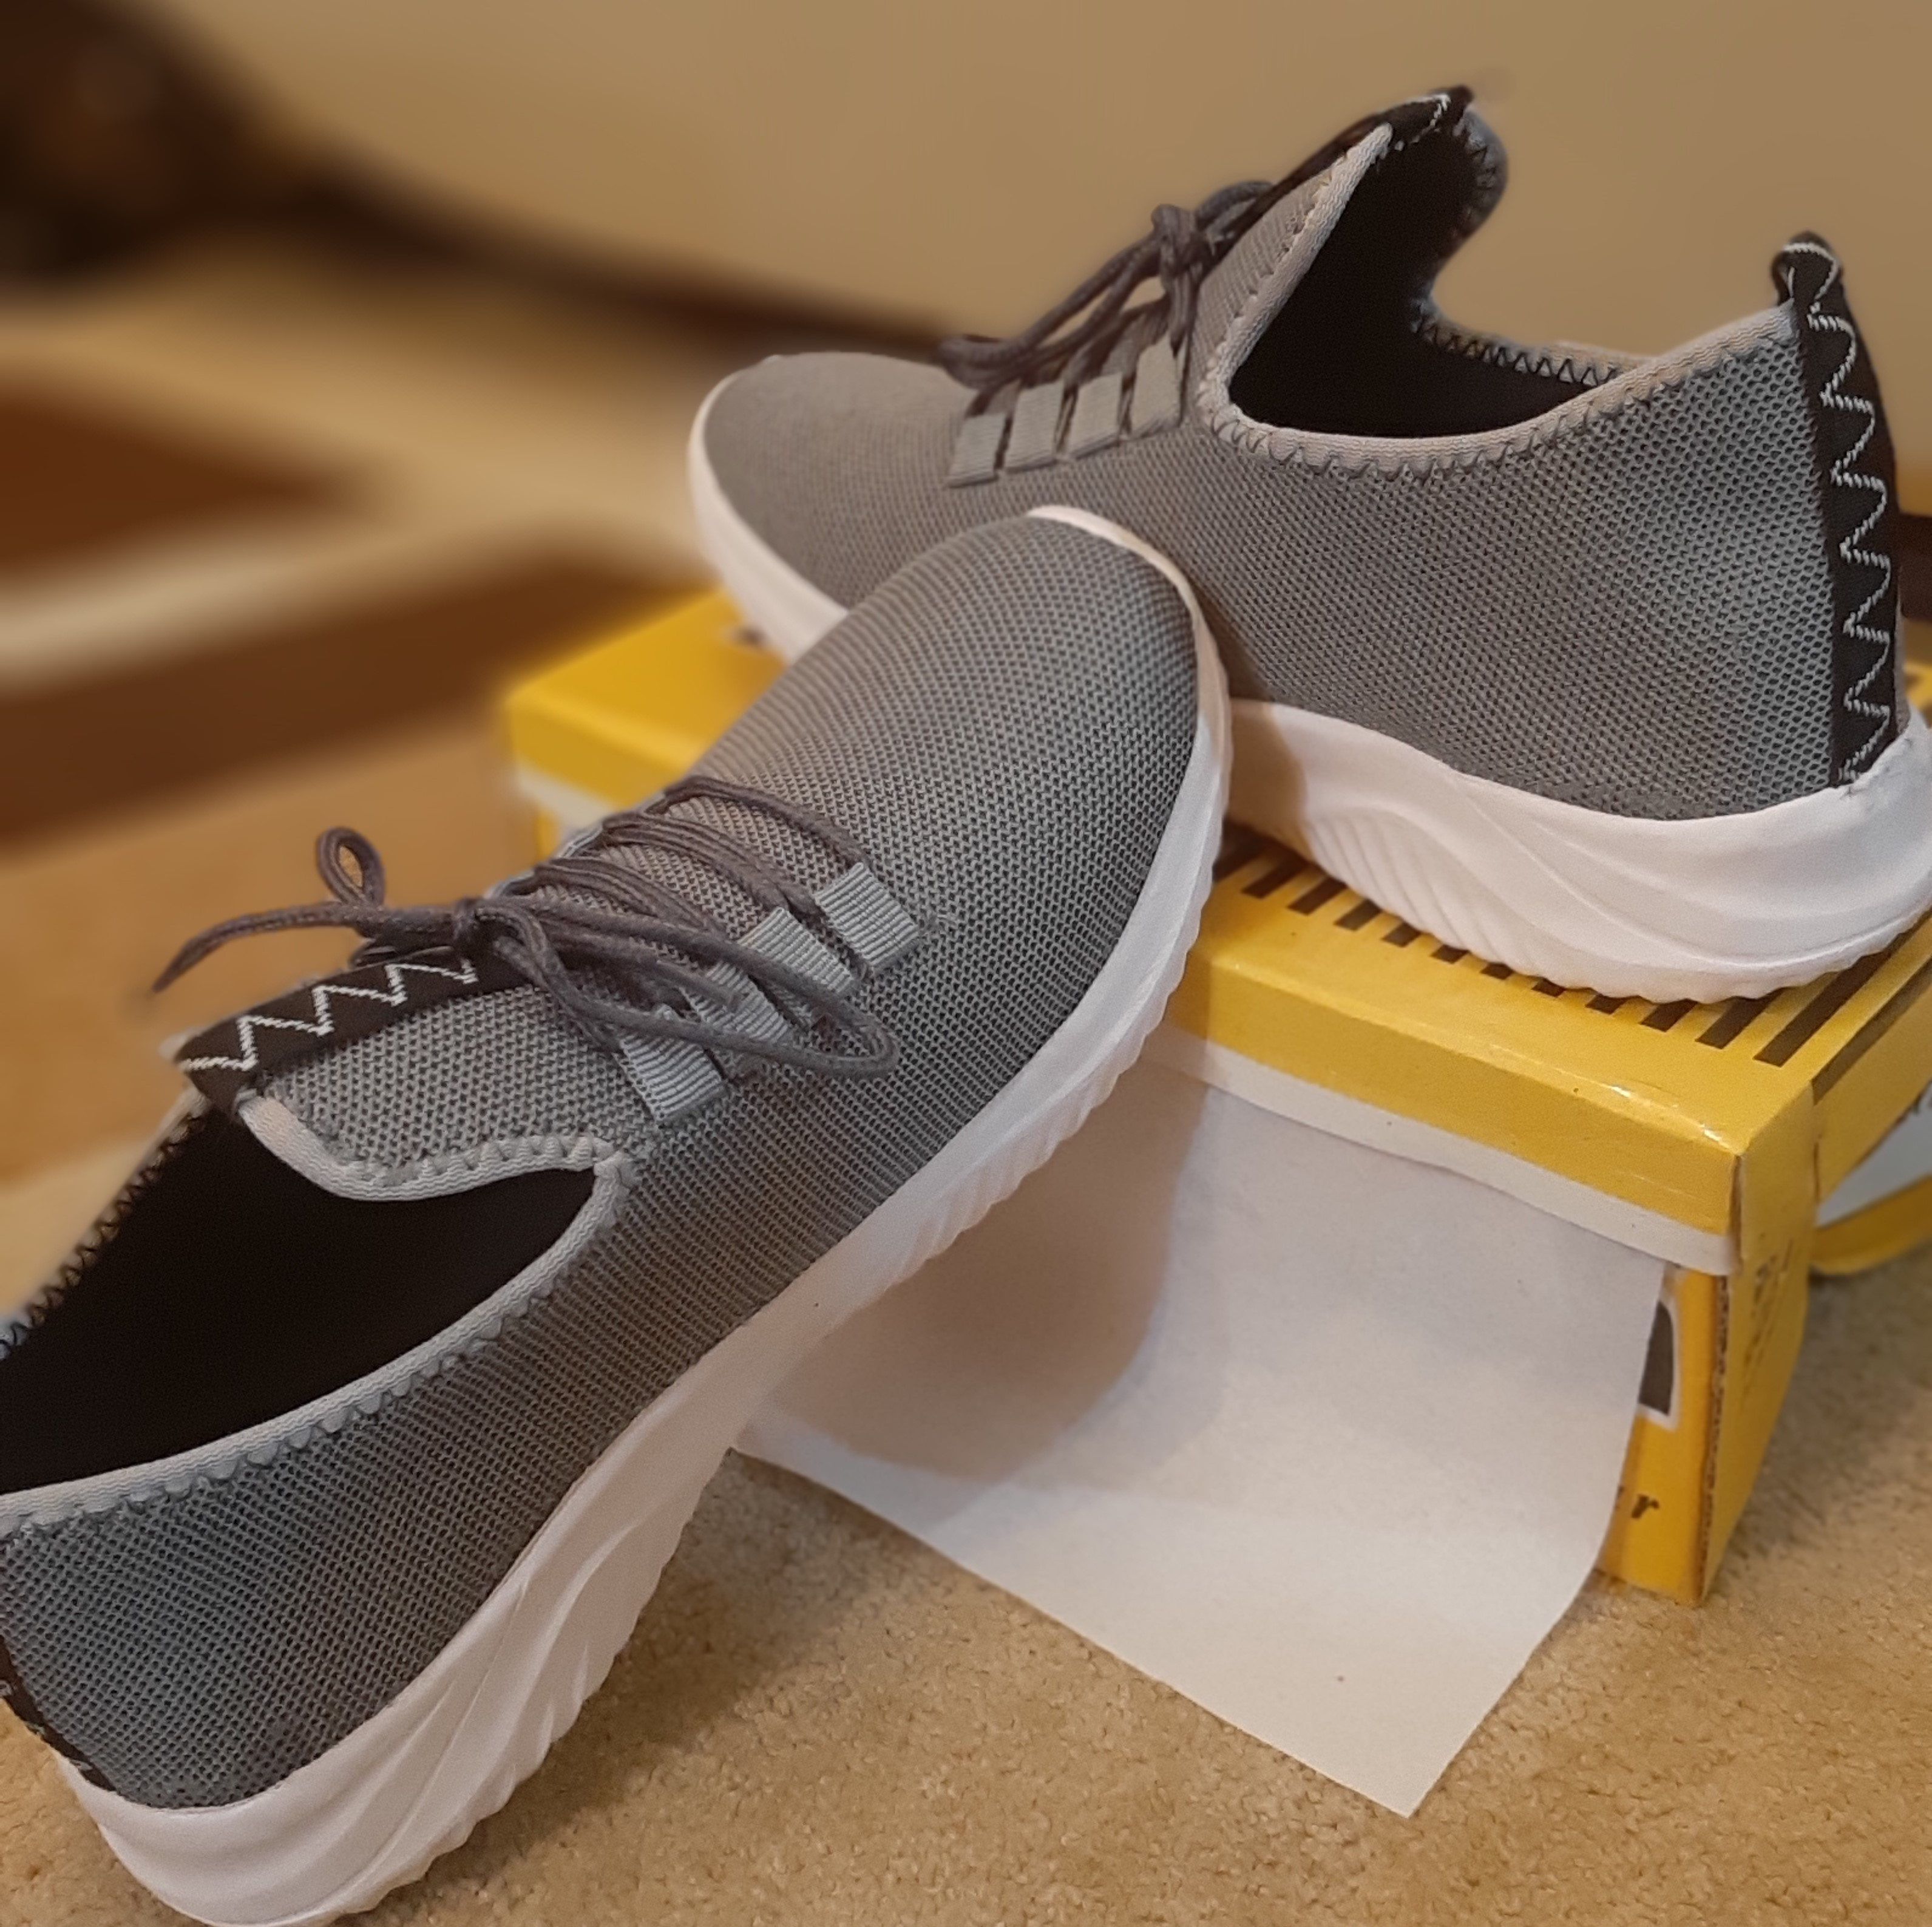 Men's Casual Sneakers -Grey Running Shoes For Best Price Only 780